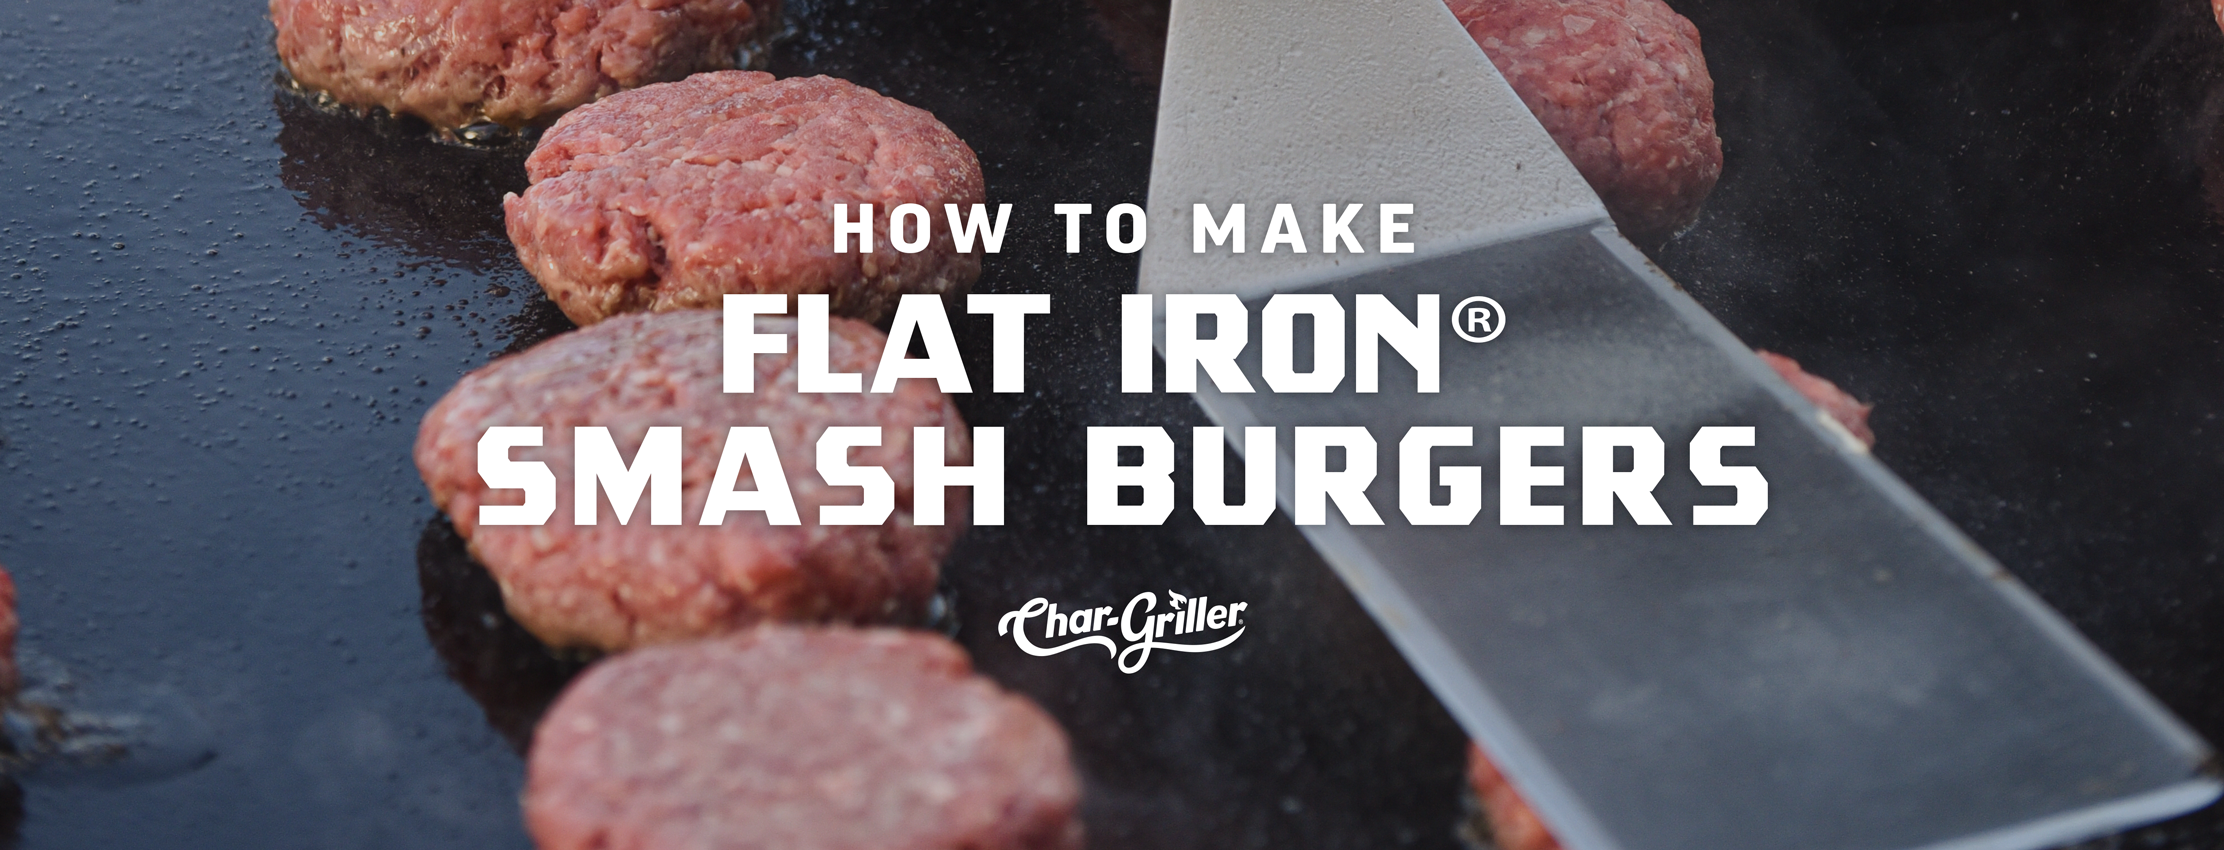 How to Make Flat Iron® Smash Burgers